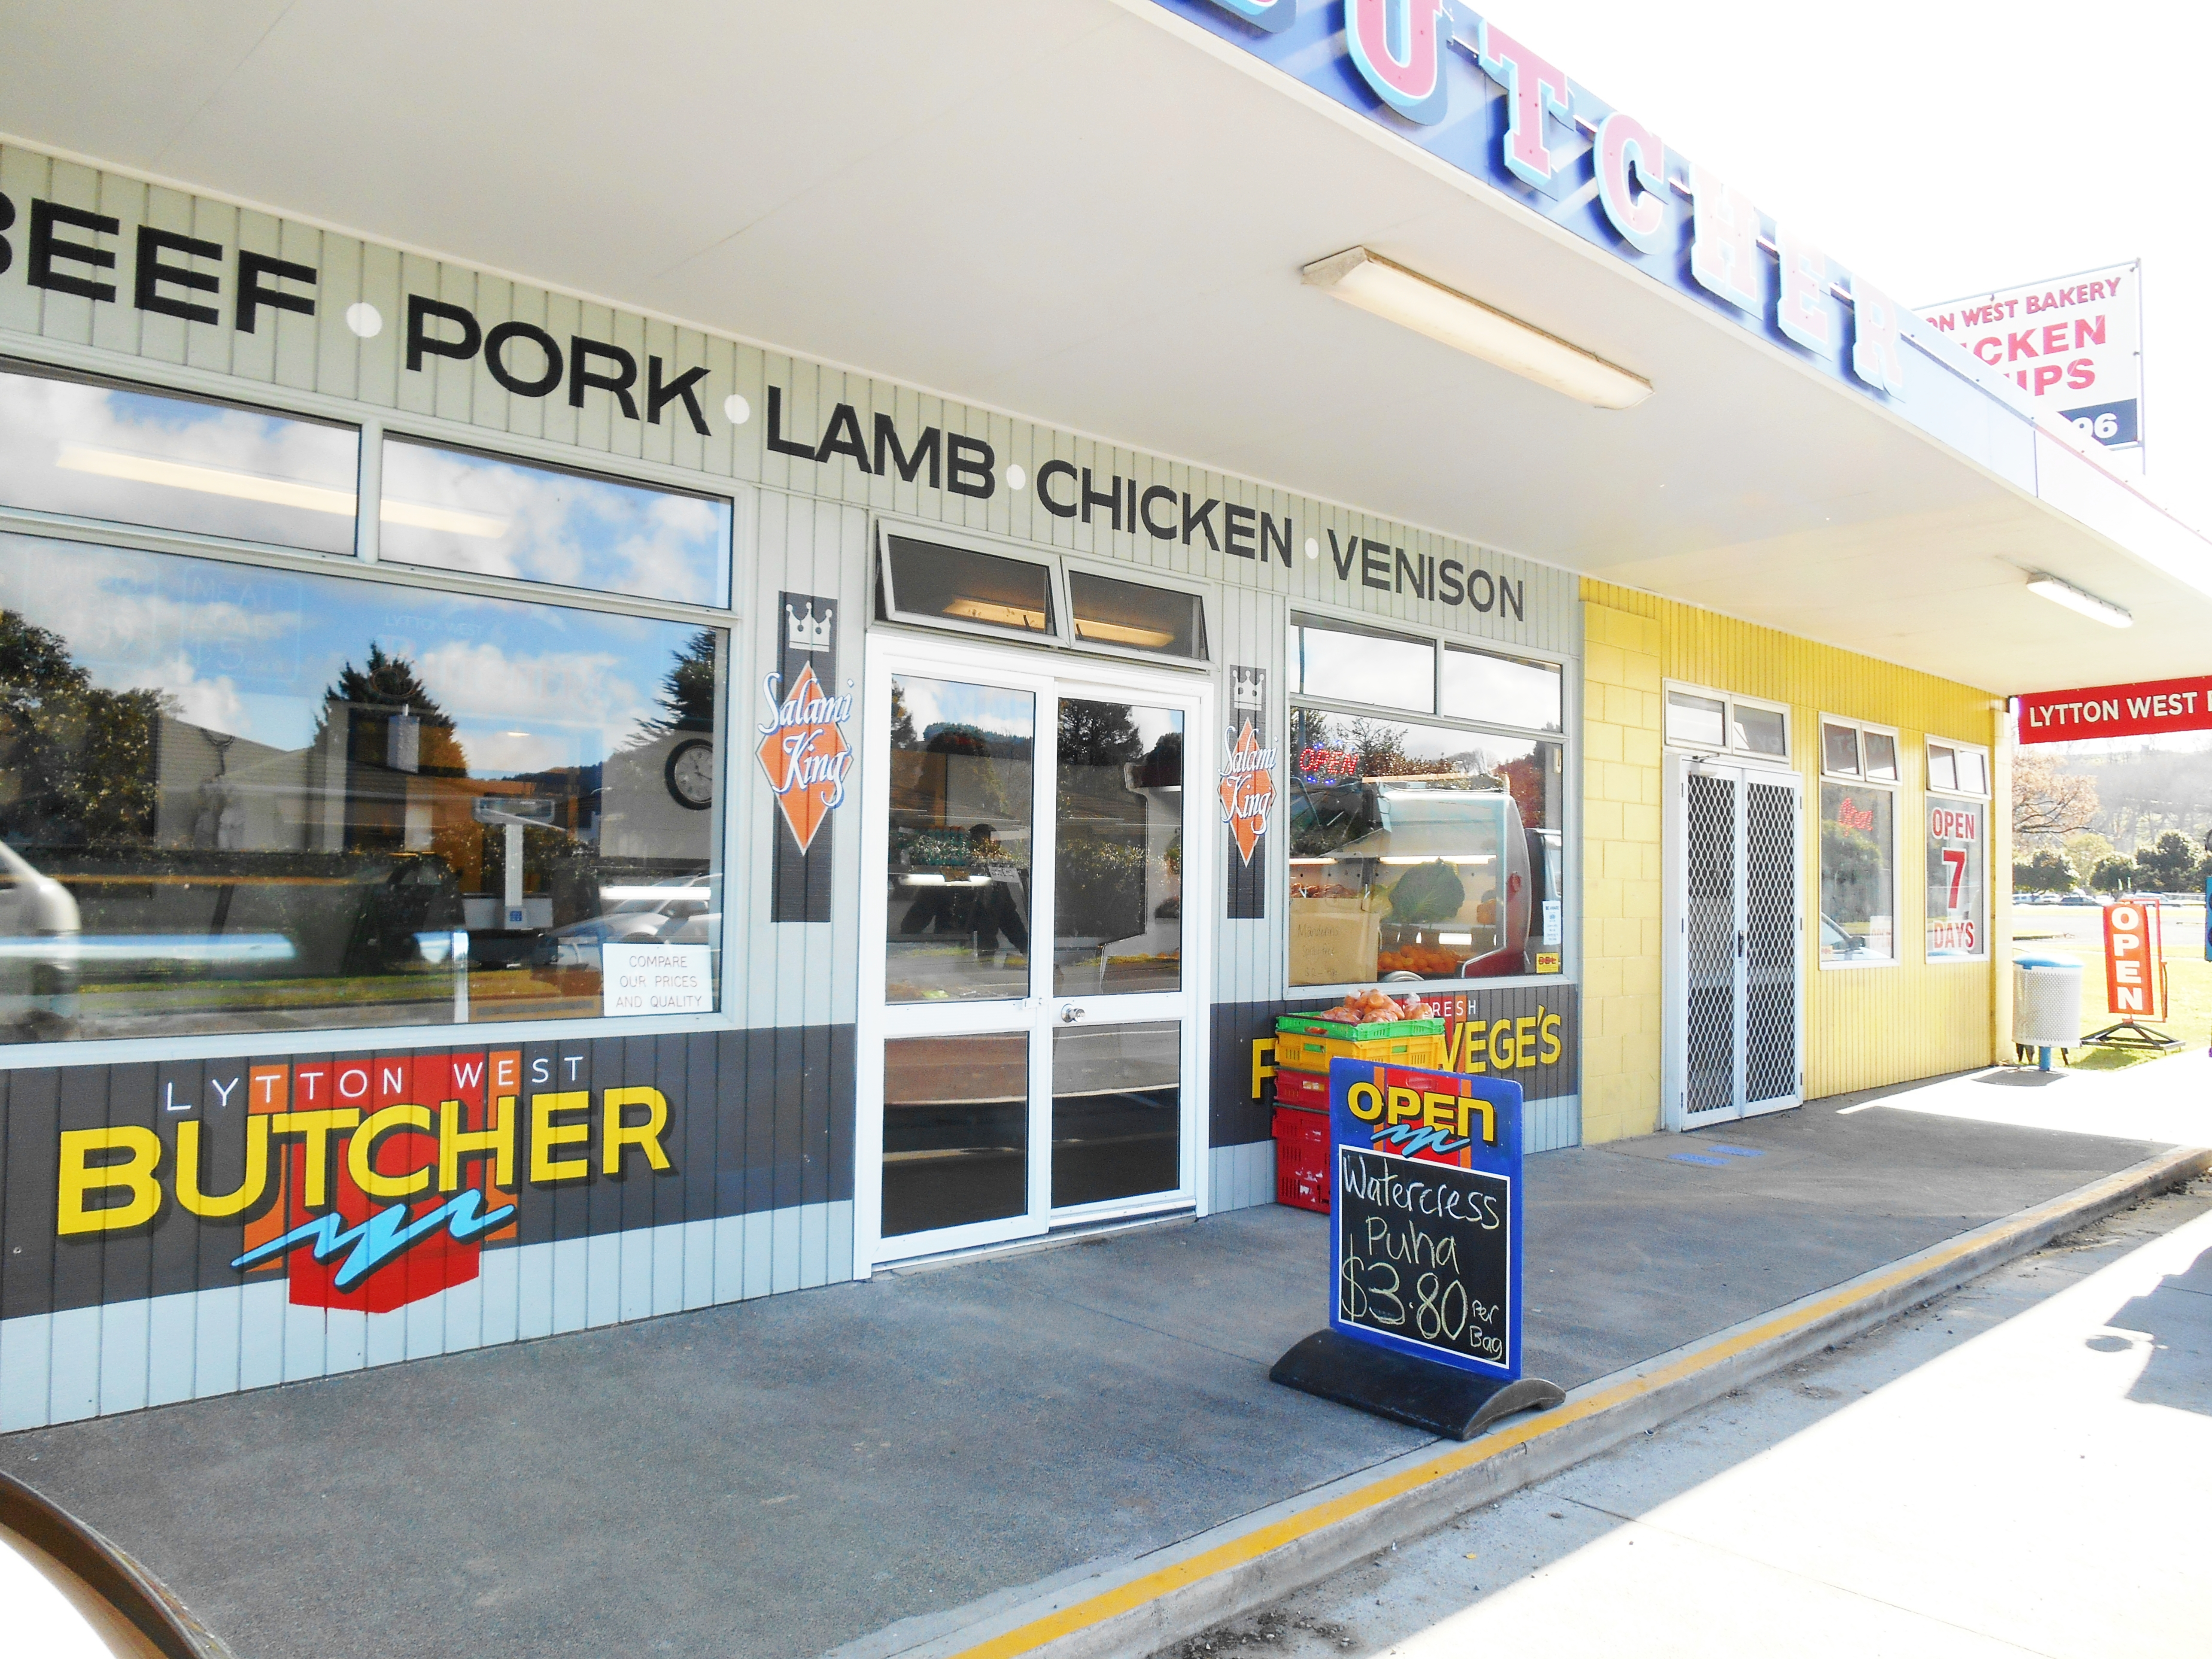 Local butcher and bakery - 100 meters